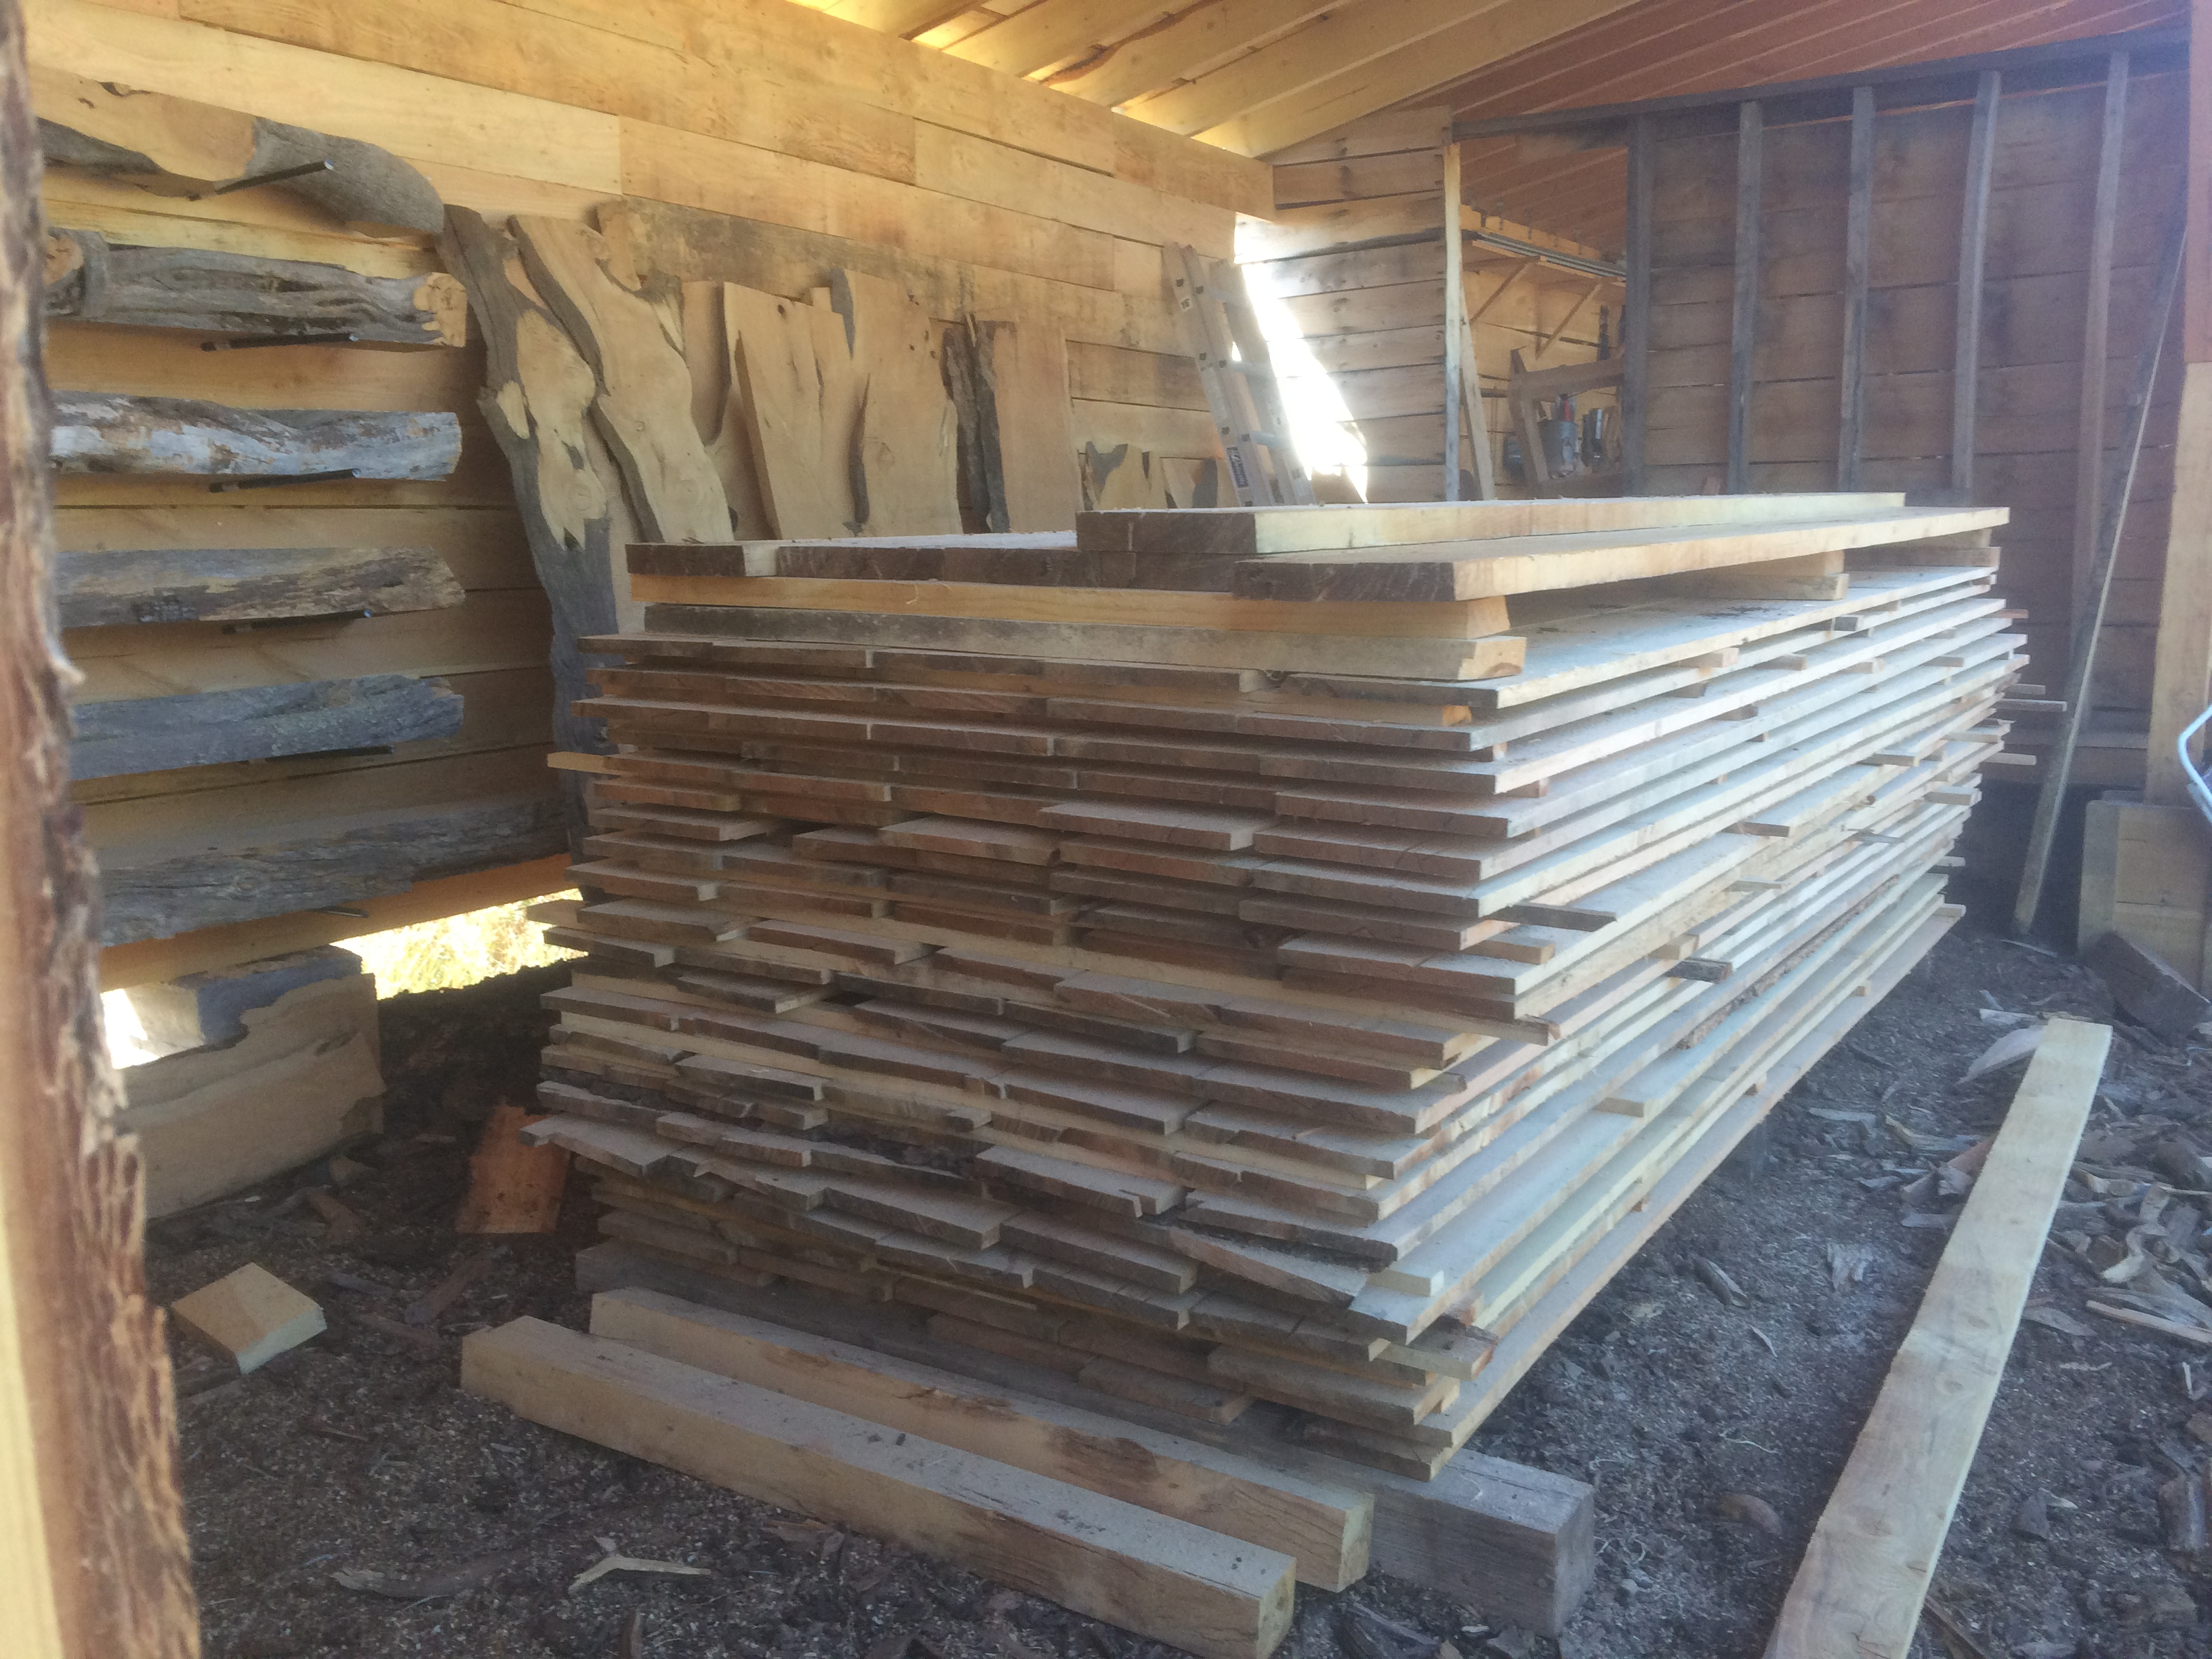 Wood S High Rolls Rough Cut Lumber